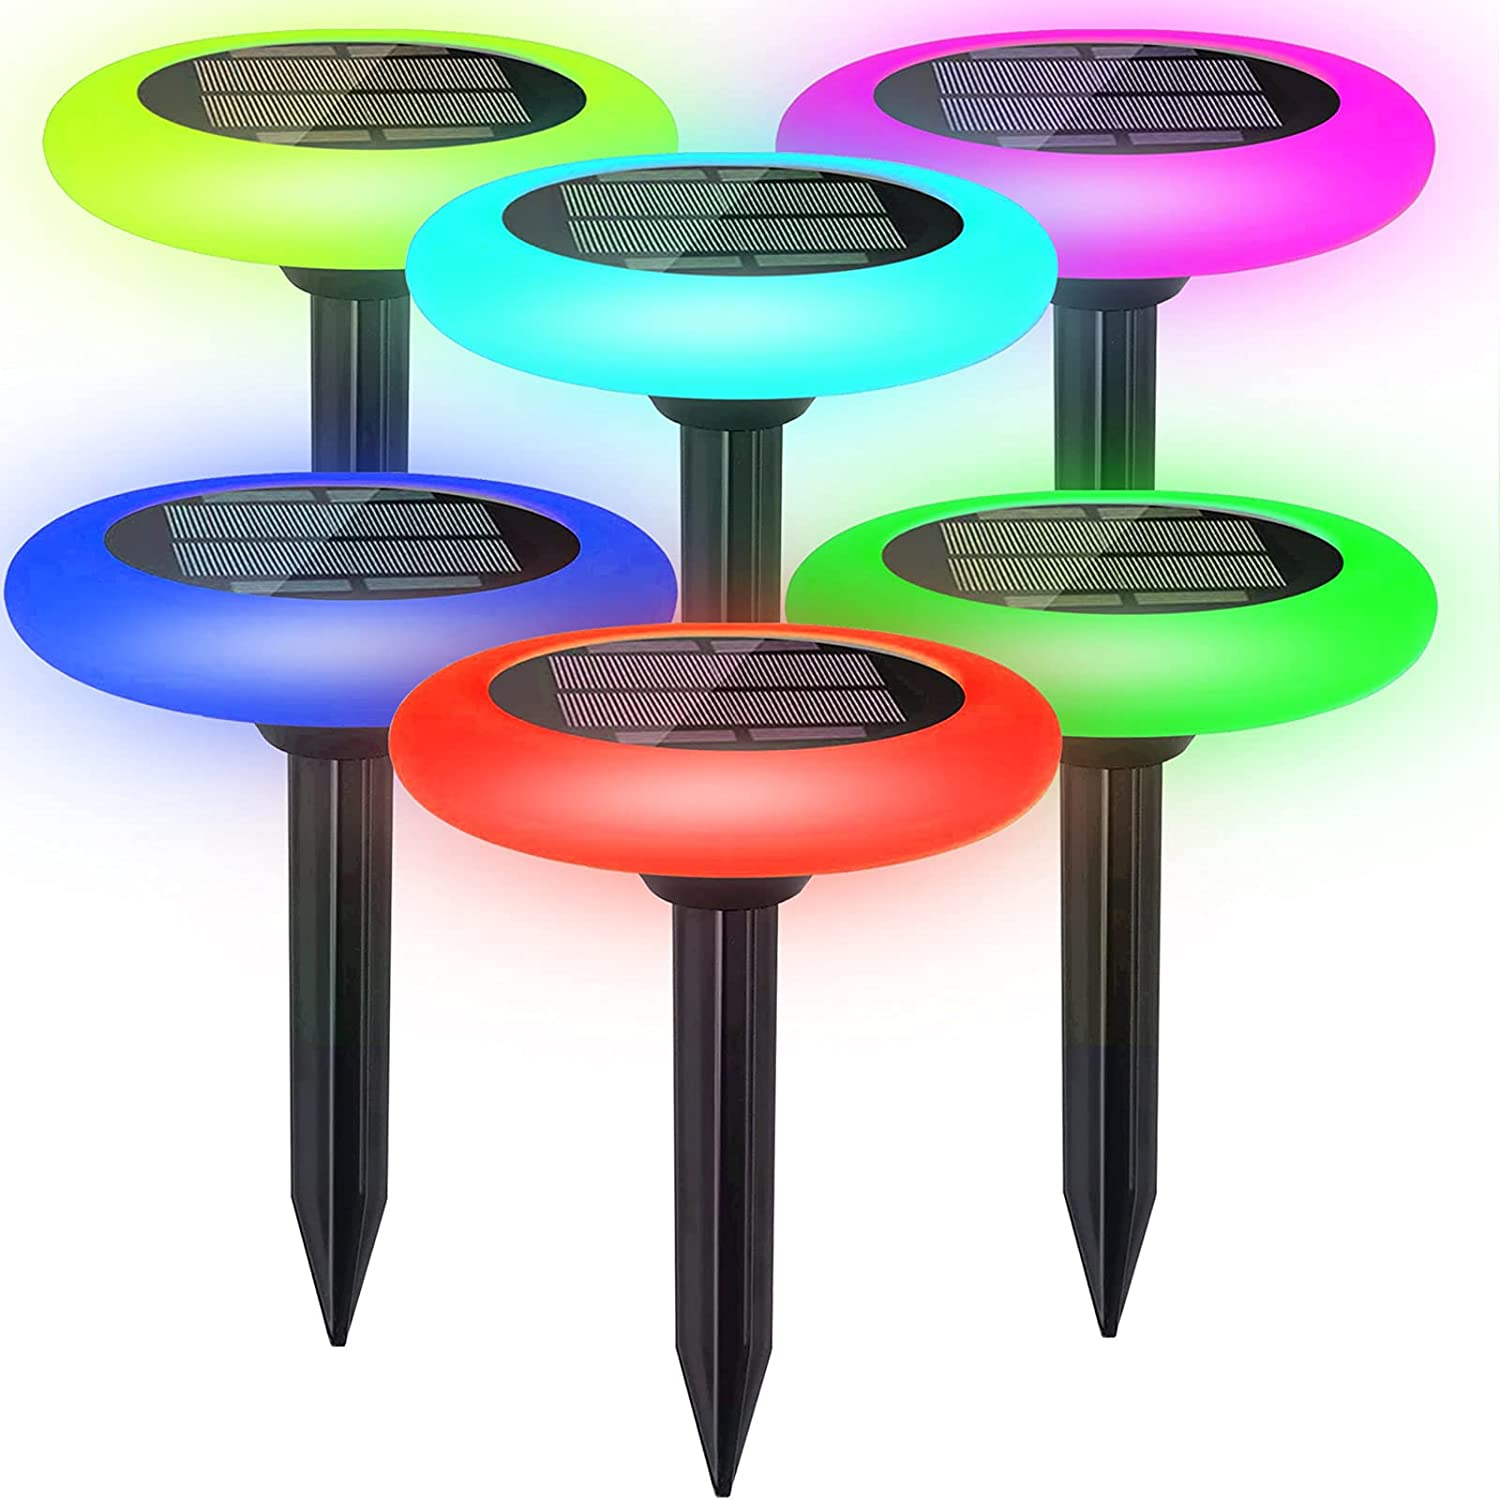 Colorize Solar Lights Outdoor - Colorful Pathway Solar Light (6 Lights) Decorative Weatherproof Auto On/Off Outdoor Lights: Garden, Landscape, Patio, Pool, Yard